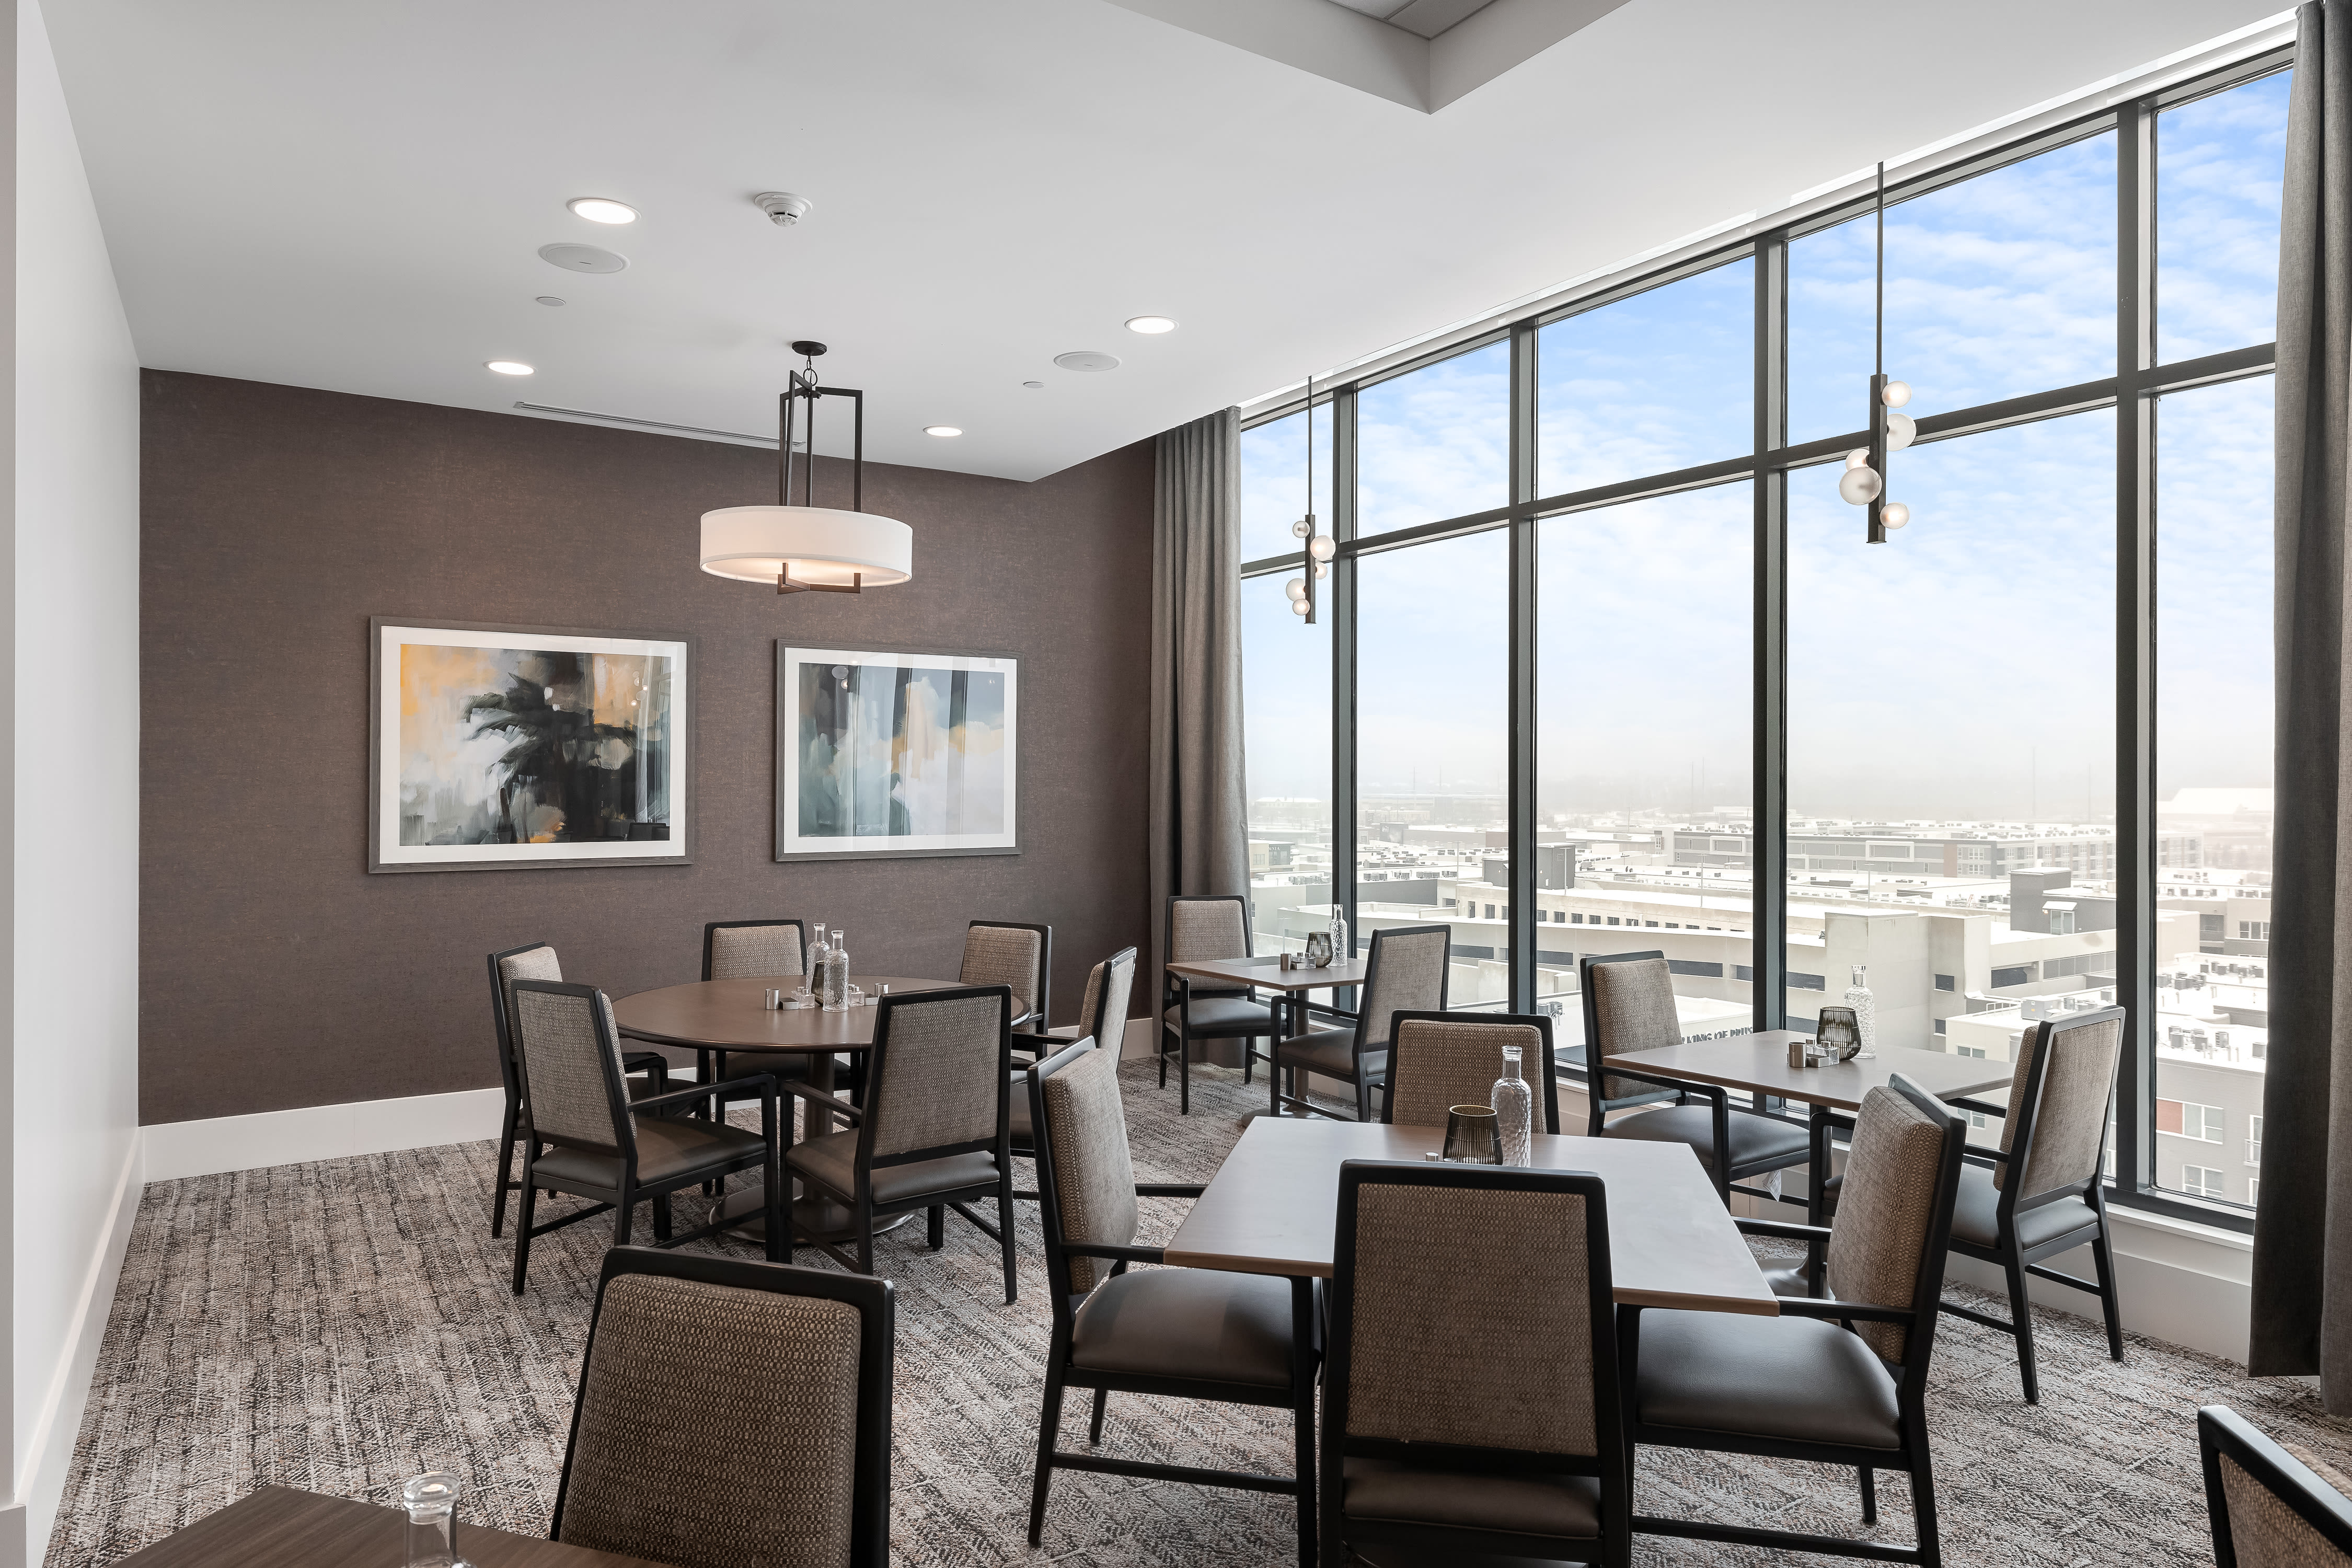 Meeting room at Anthology of King of Prussia – Now Open in King of Prussia, Pennsylvania